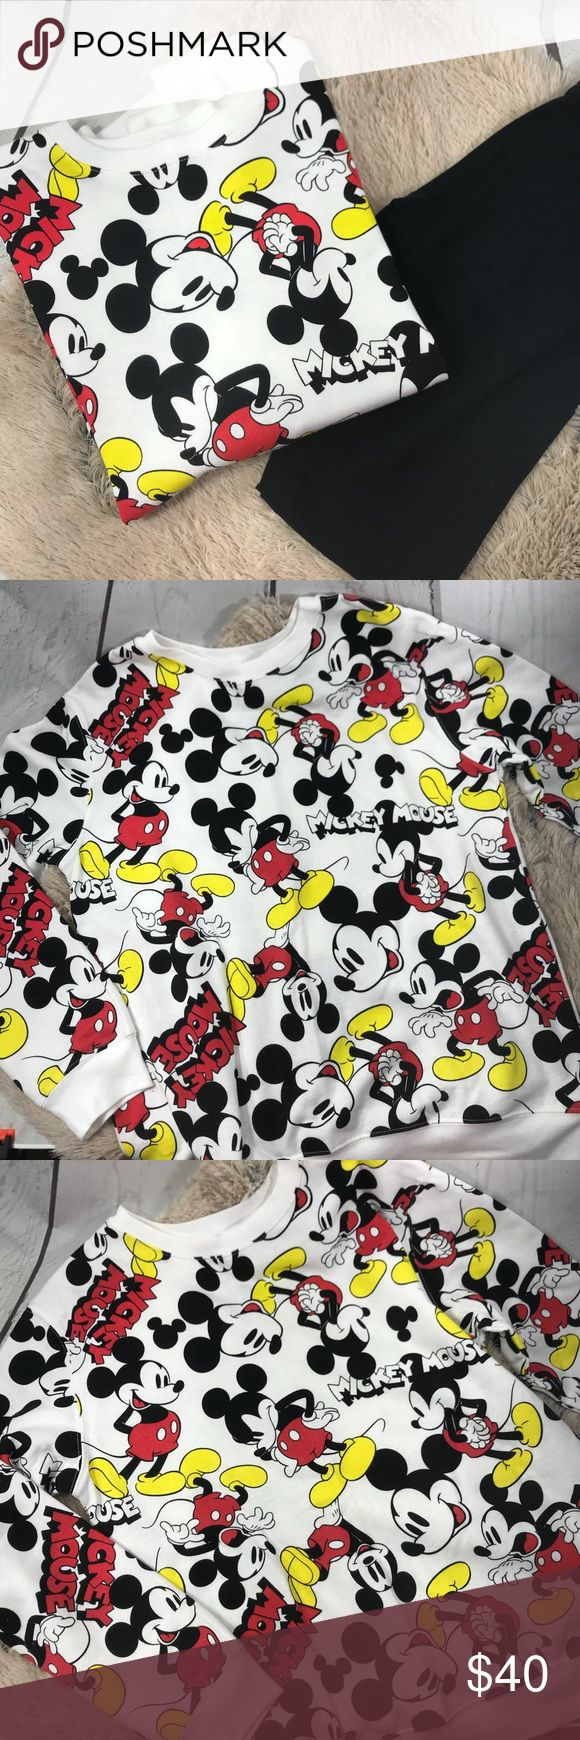 Mickey Mouse Crewneck Pullover Sweater NWOT Disney Mickey Mouse Print White Crewneck Pullover Sweater Lightly fleece lined inside.  Perfect for a Disneyland trip   Size: Large  Condition: New without Tags. No Flaws Disney Sweaters Crew & Scoop Necks